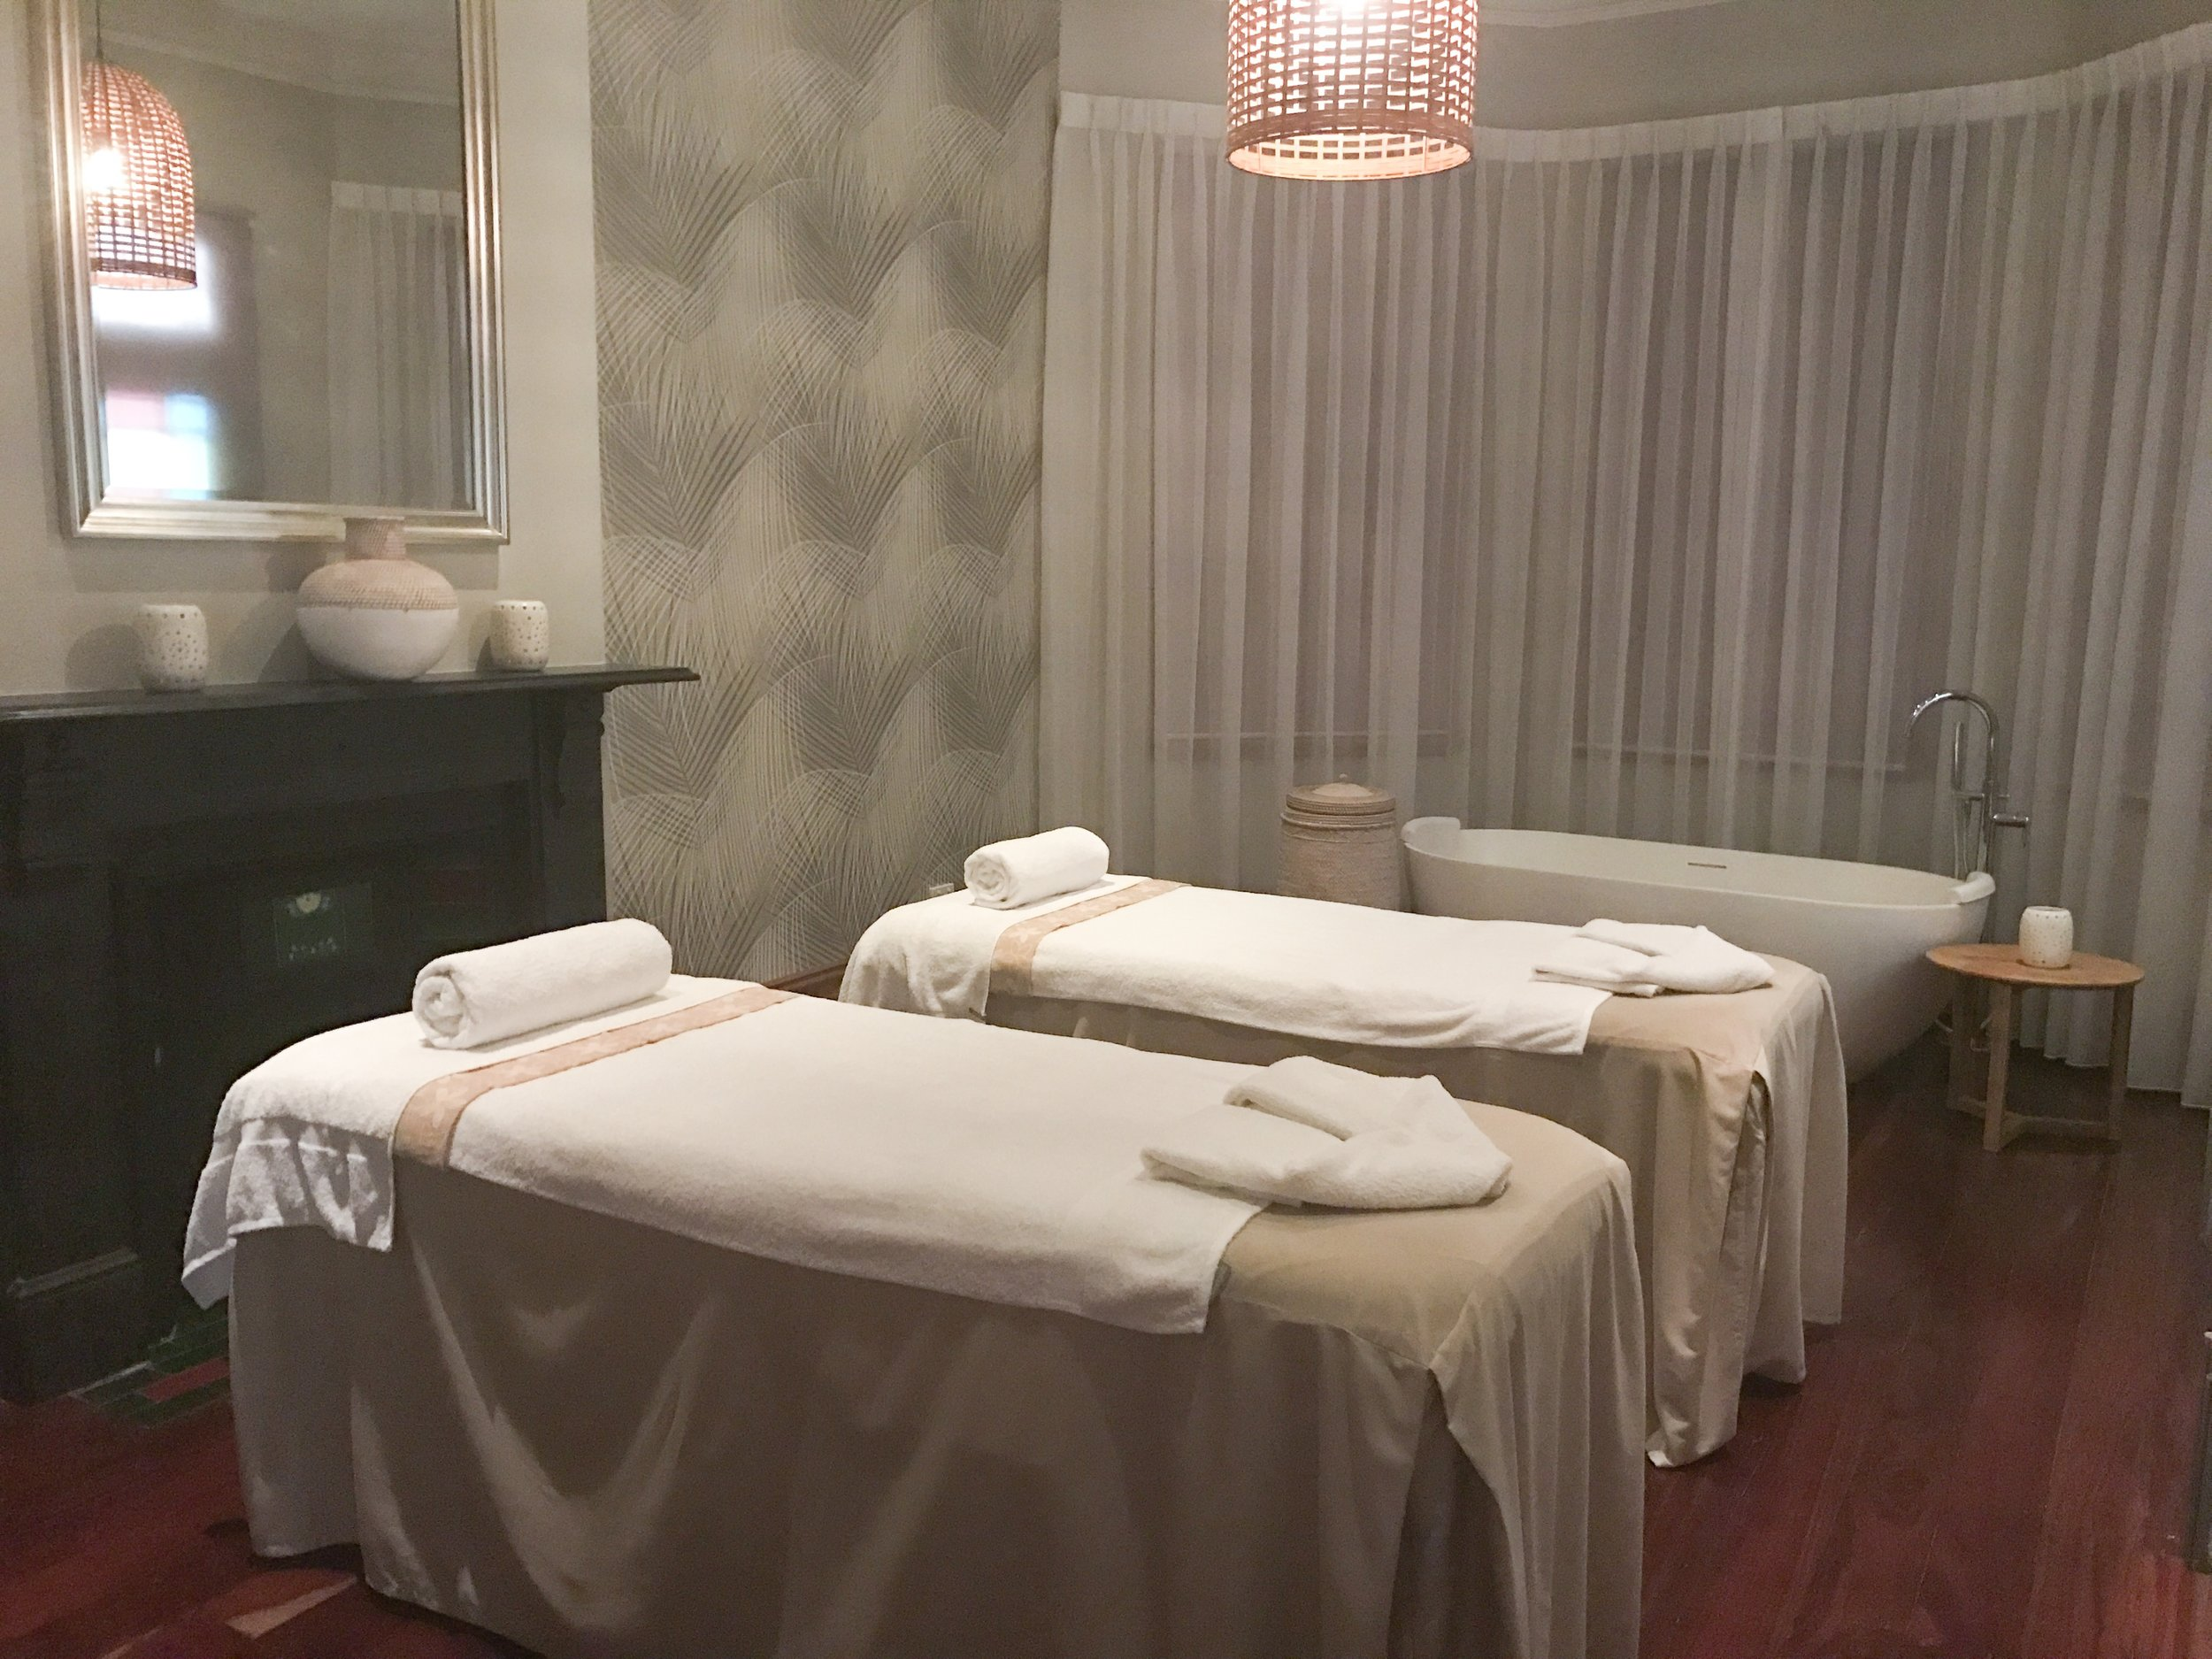 Deluxe Couples Treatment Room at Bodhi J Wellness Spa in Perth